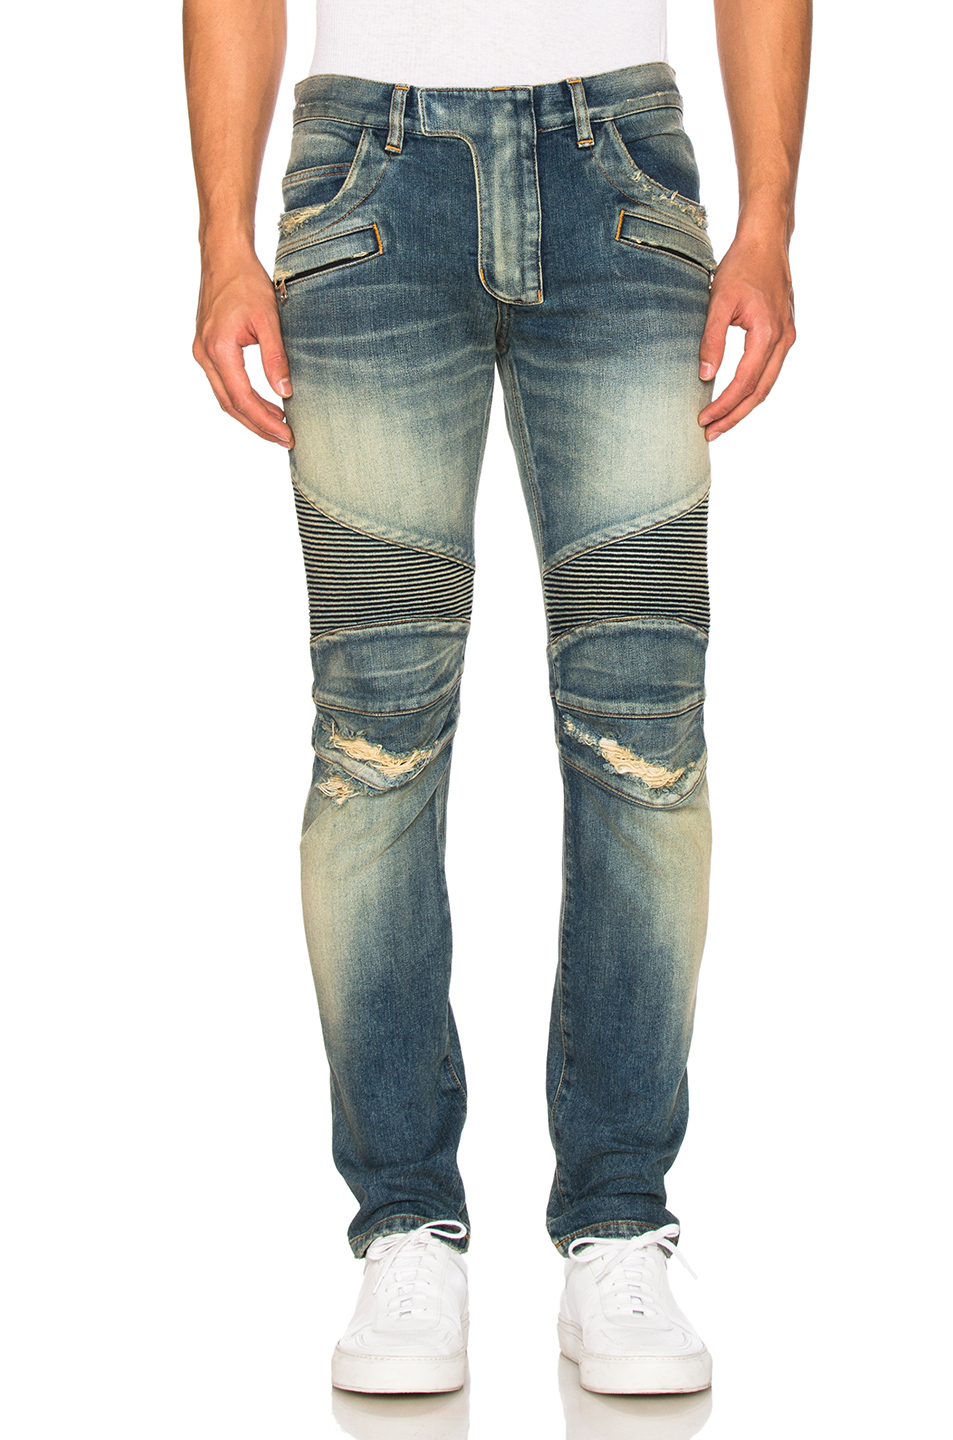 Photo of BALMAIN Biker Stretch Jeans in Blue - shop BALMAIN menswear